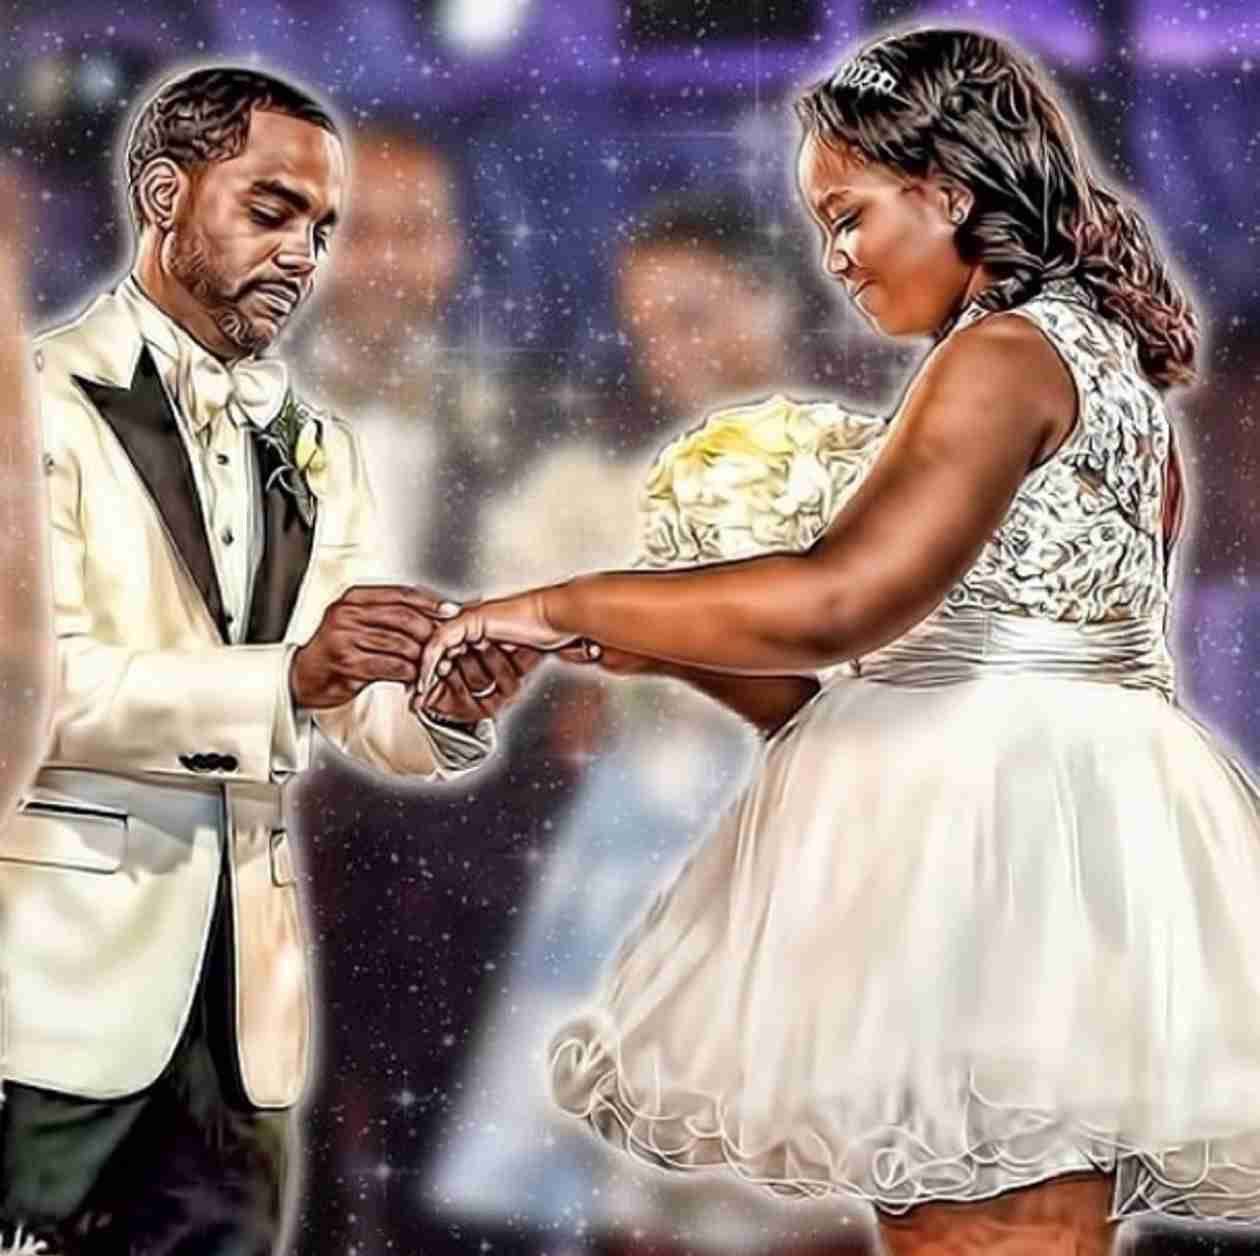 Kandi Burruss Shares Heartwarming Moment Between Todd Tucker and Riley (PHOTO)